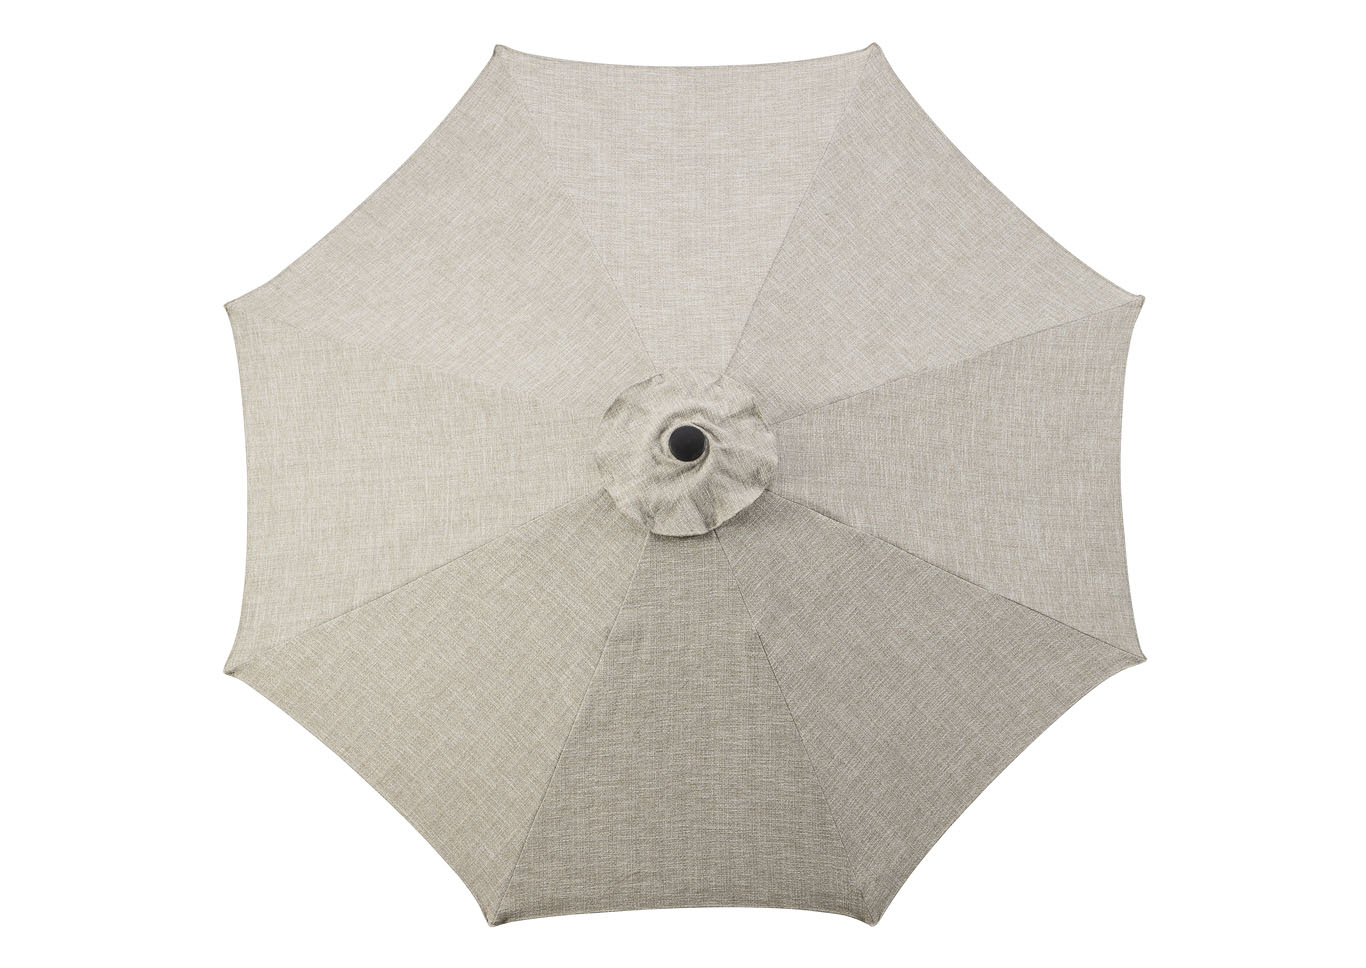 Beige Medium Auto Tilt Umbrella and Base,Outdoor By Ashley